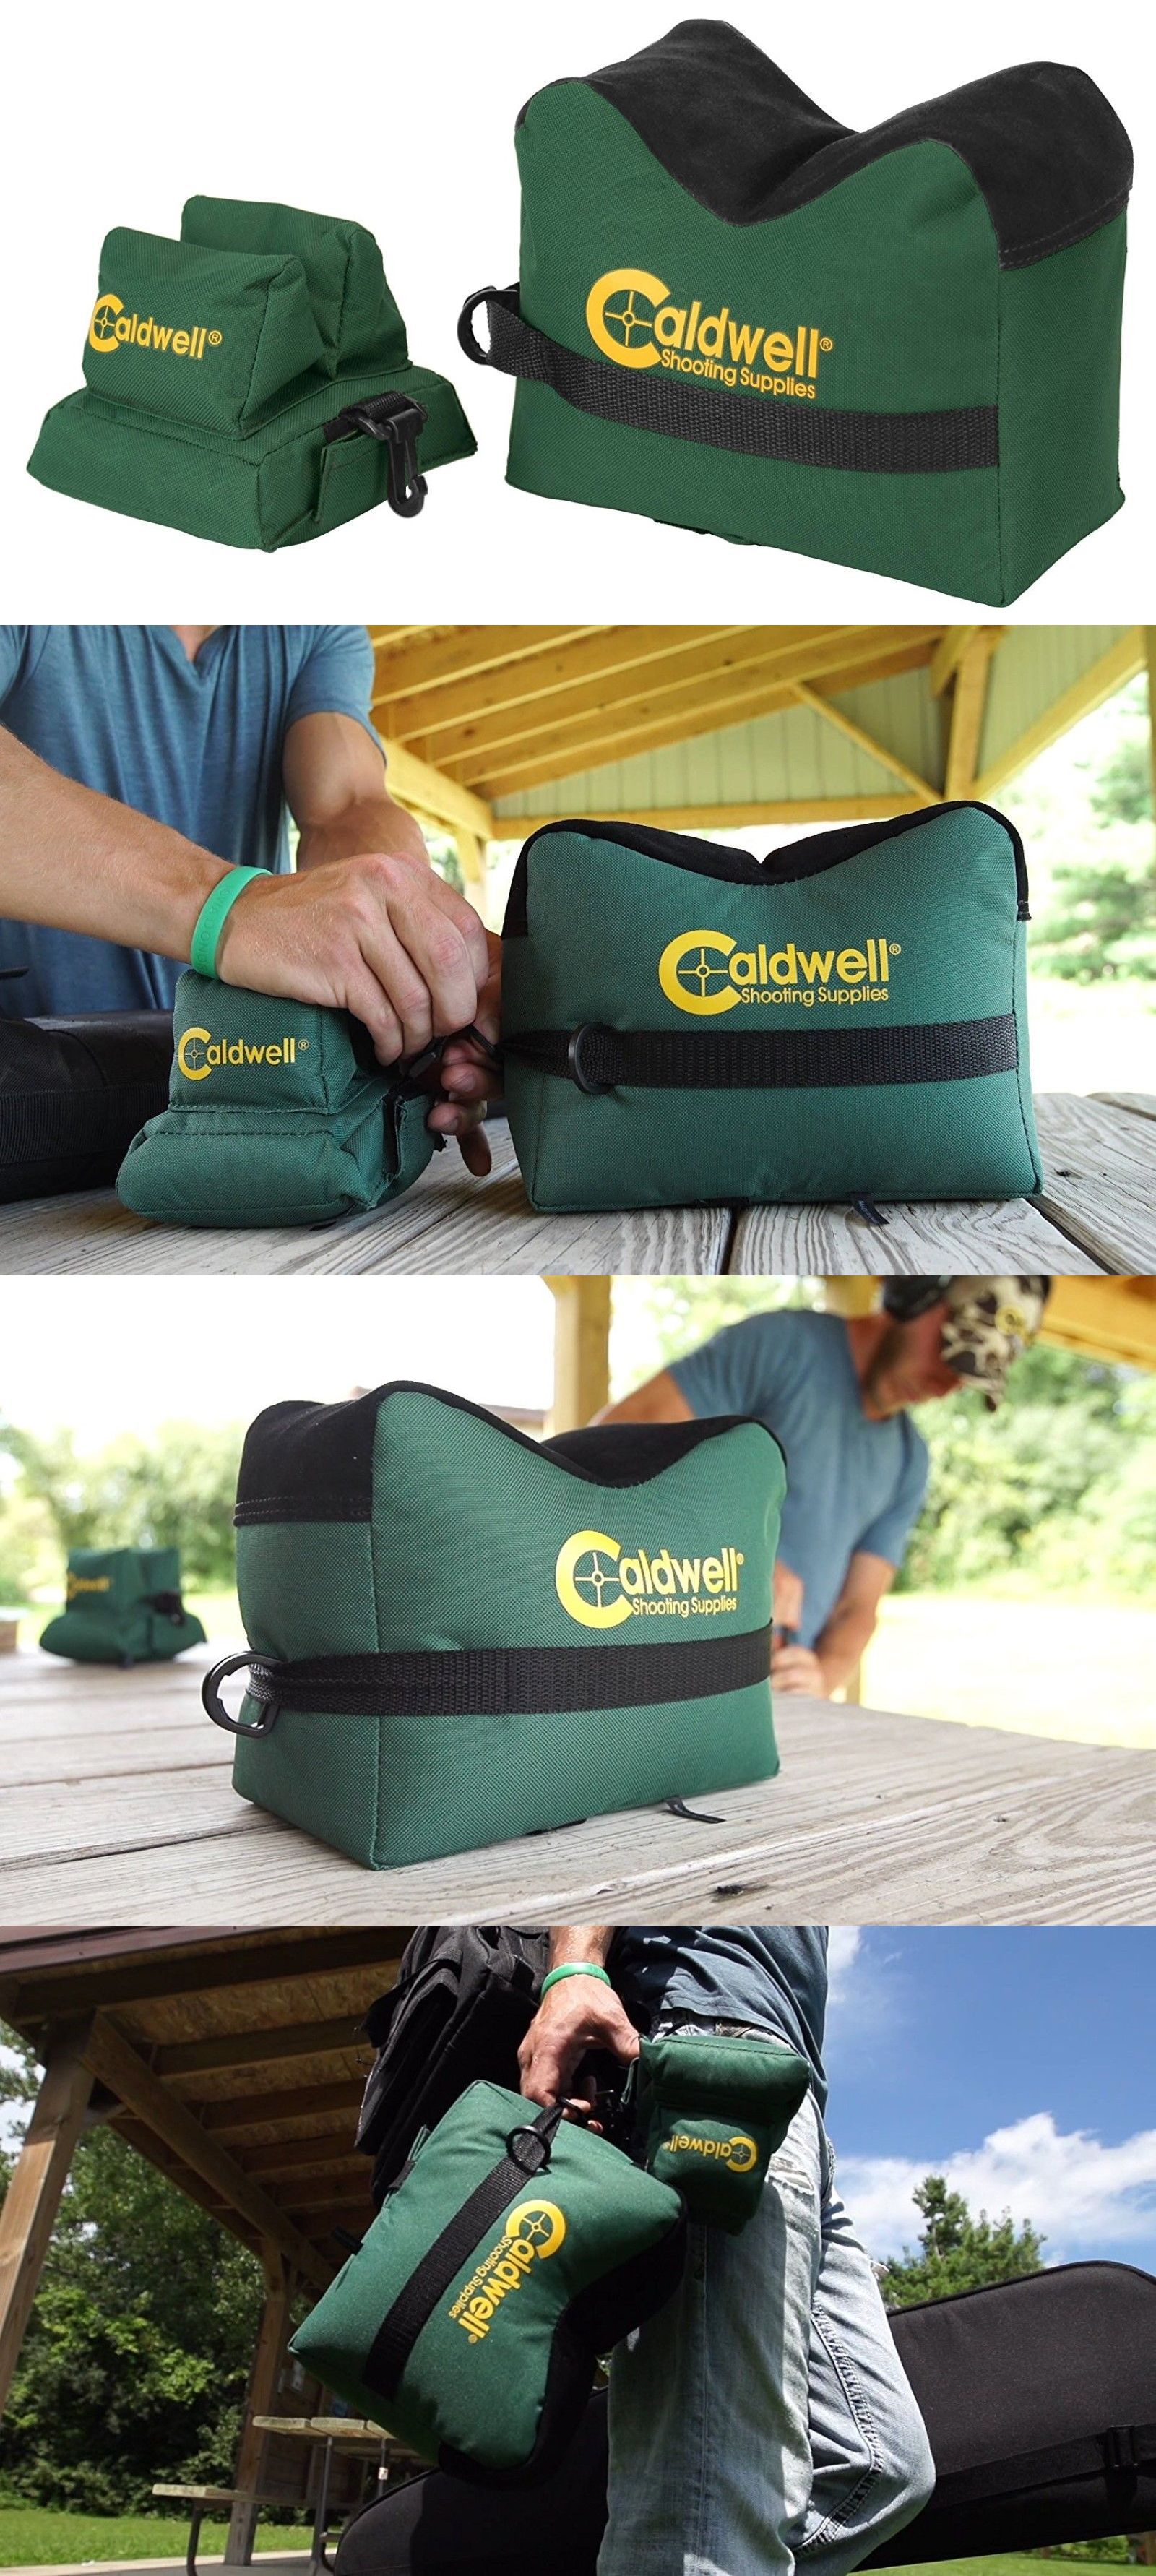 Benches and Rests 177887  Caldwell Deadshot Boxed Front Rear Bag Rest 2 Pc  Hunting Gun Rifle Holder Shoot -  BUY IT NOW ONLY   18.21 on eBay! 10faf036140